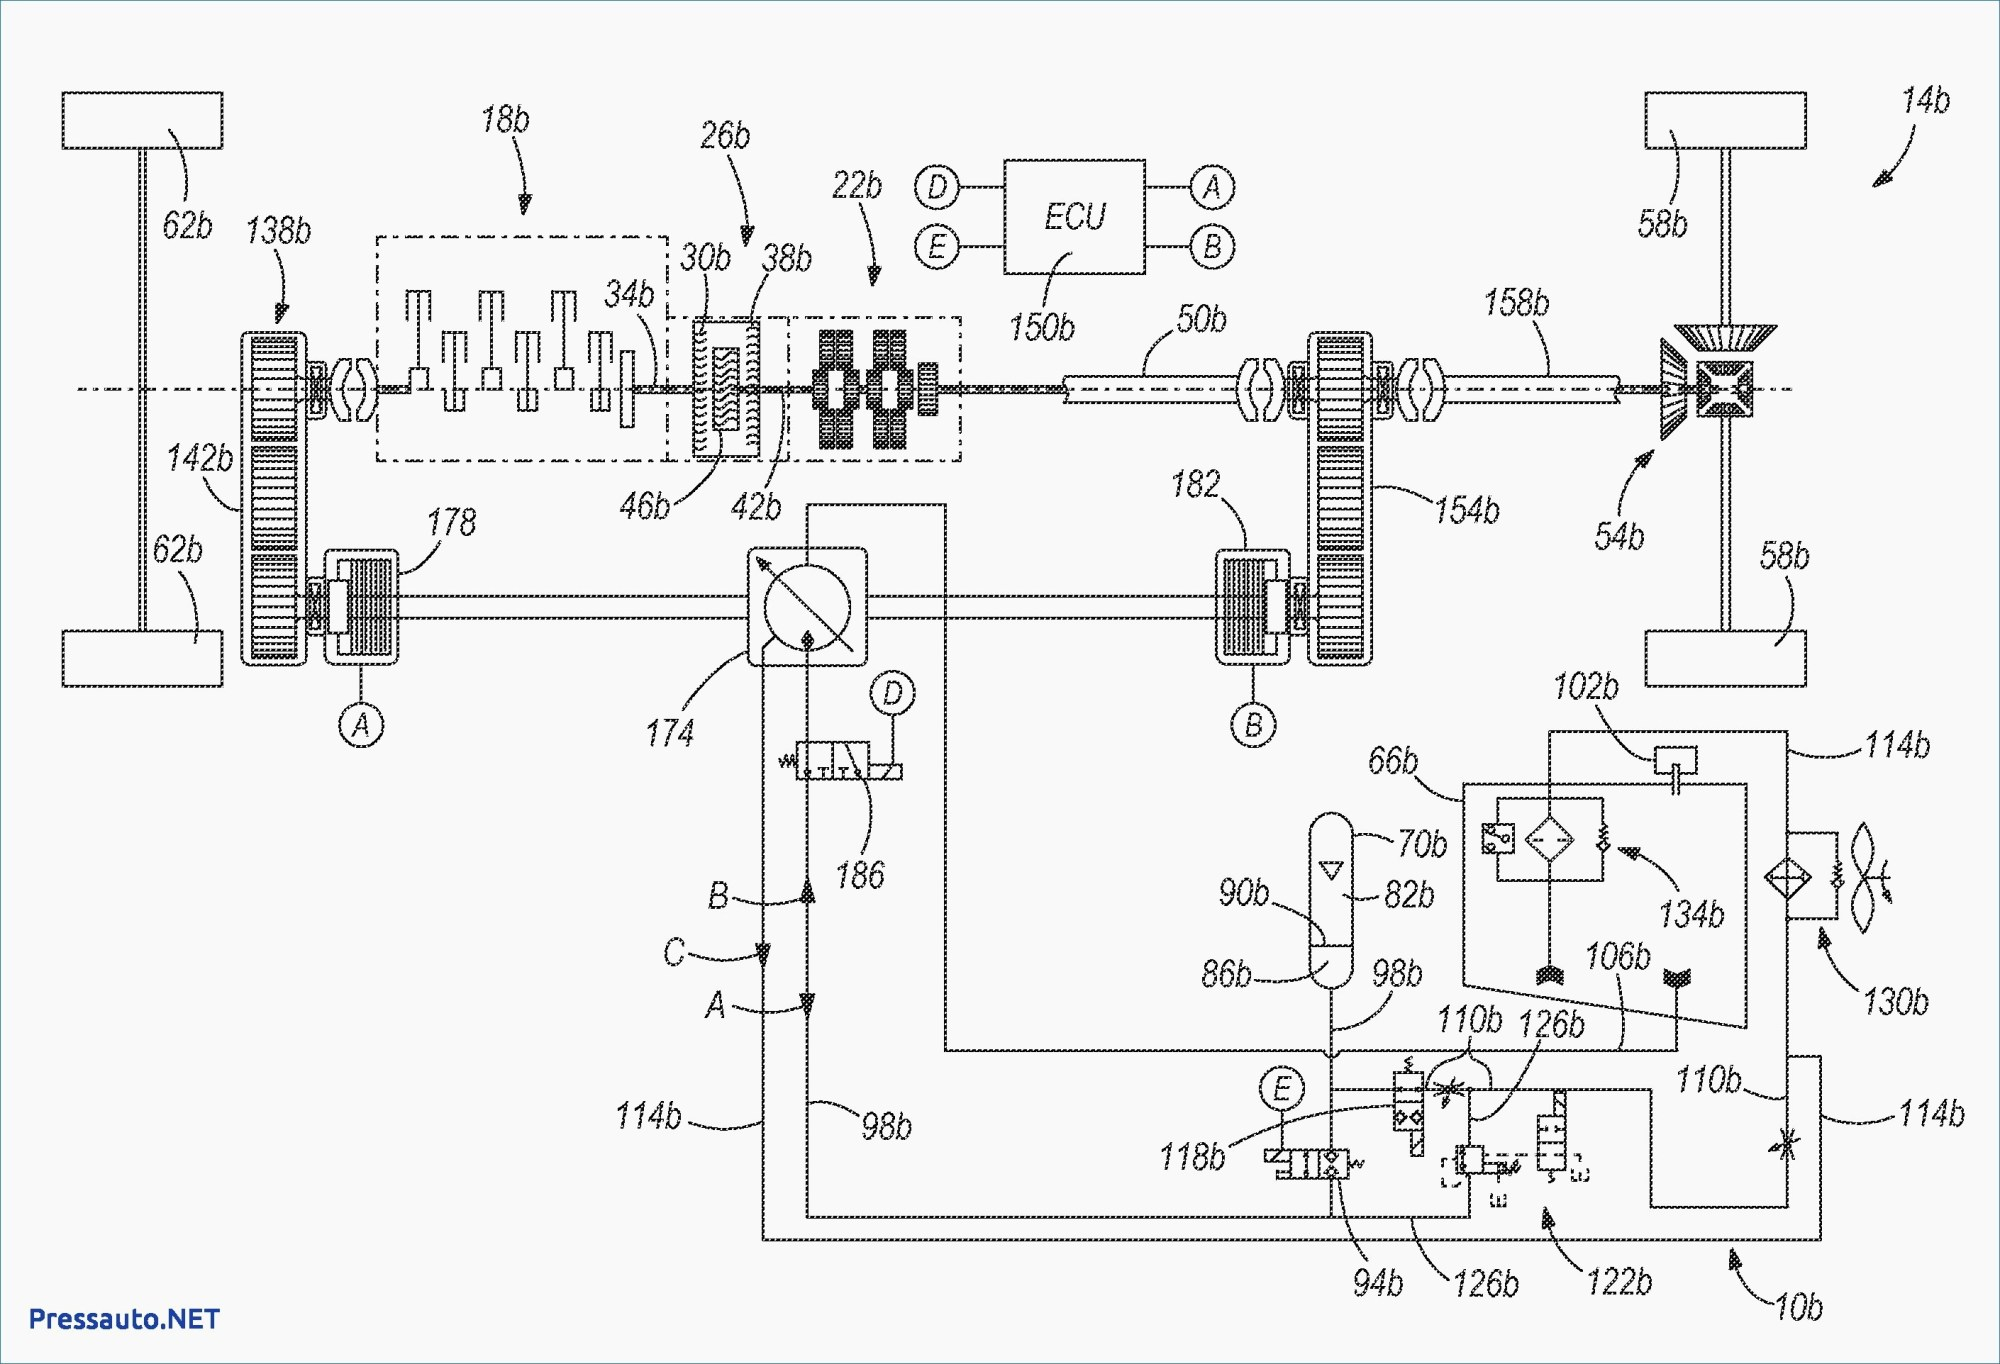 hight resolution of chevy spectrum wiring diagrams wiring schematic diagramcub cadet model 1440 wiring diagram best wiring library aftermarket